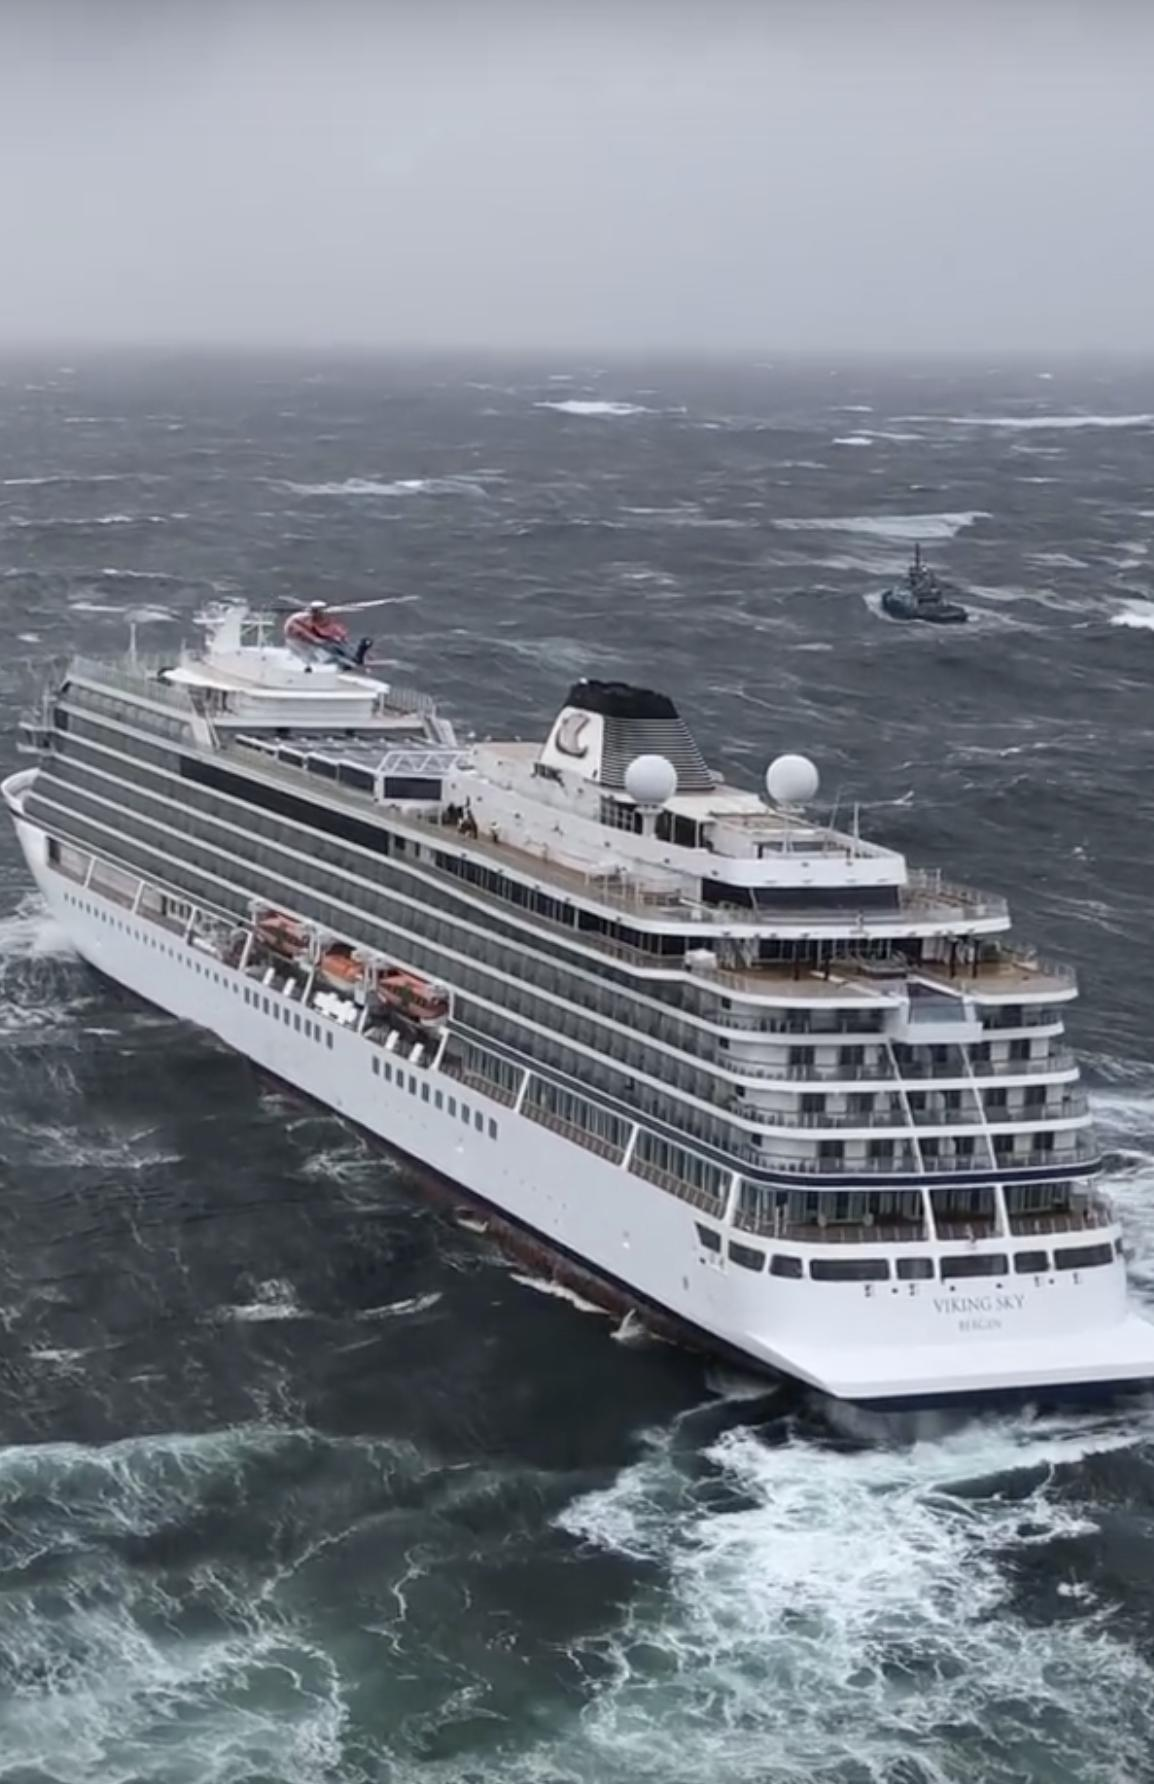 Cruise ship passengers evactuated one-by-one by helicopter after mayday call